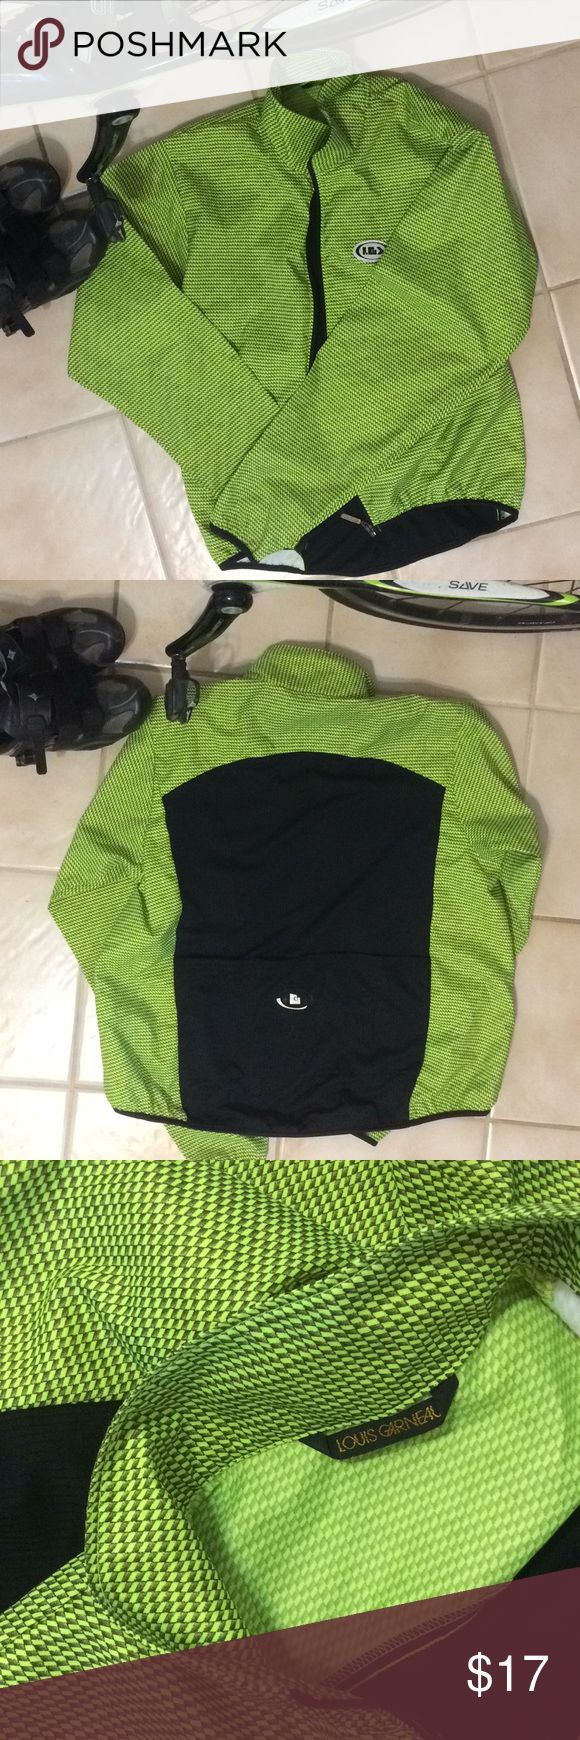 Louis Garneau wind jacket Vintage Louis Garneau wind jacket — very cool neon green and black to make sure you're hi-viz while riding. Jacket shell is moisture-resistant with breathable back panel. Brushed interior front panels help keep the wind at bay. Full zip and high, firm collar. Black trim with not-too-tight elastic at cuffs and hem. With three drop packets. Louis Garneau Jackets & Coats